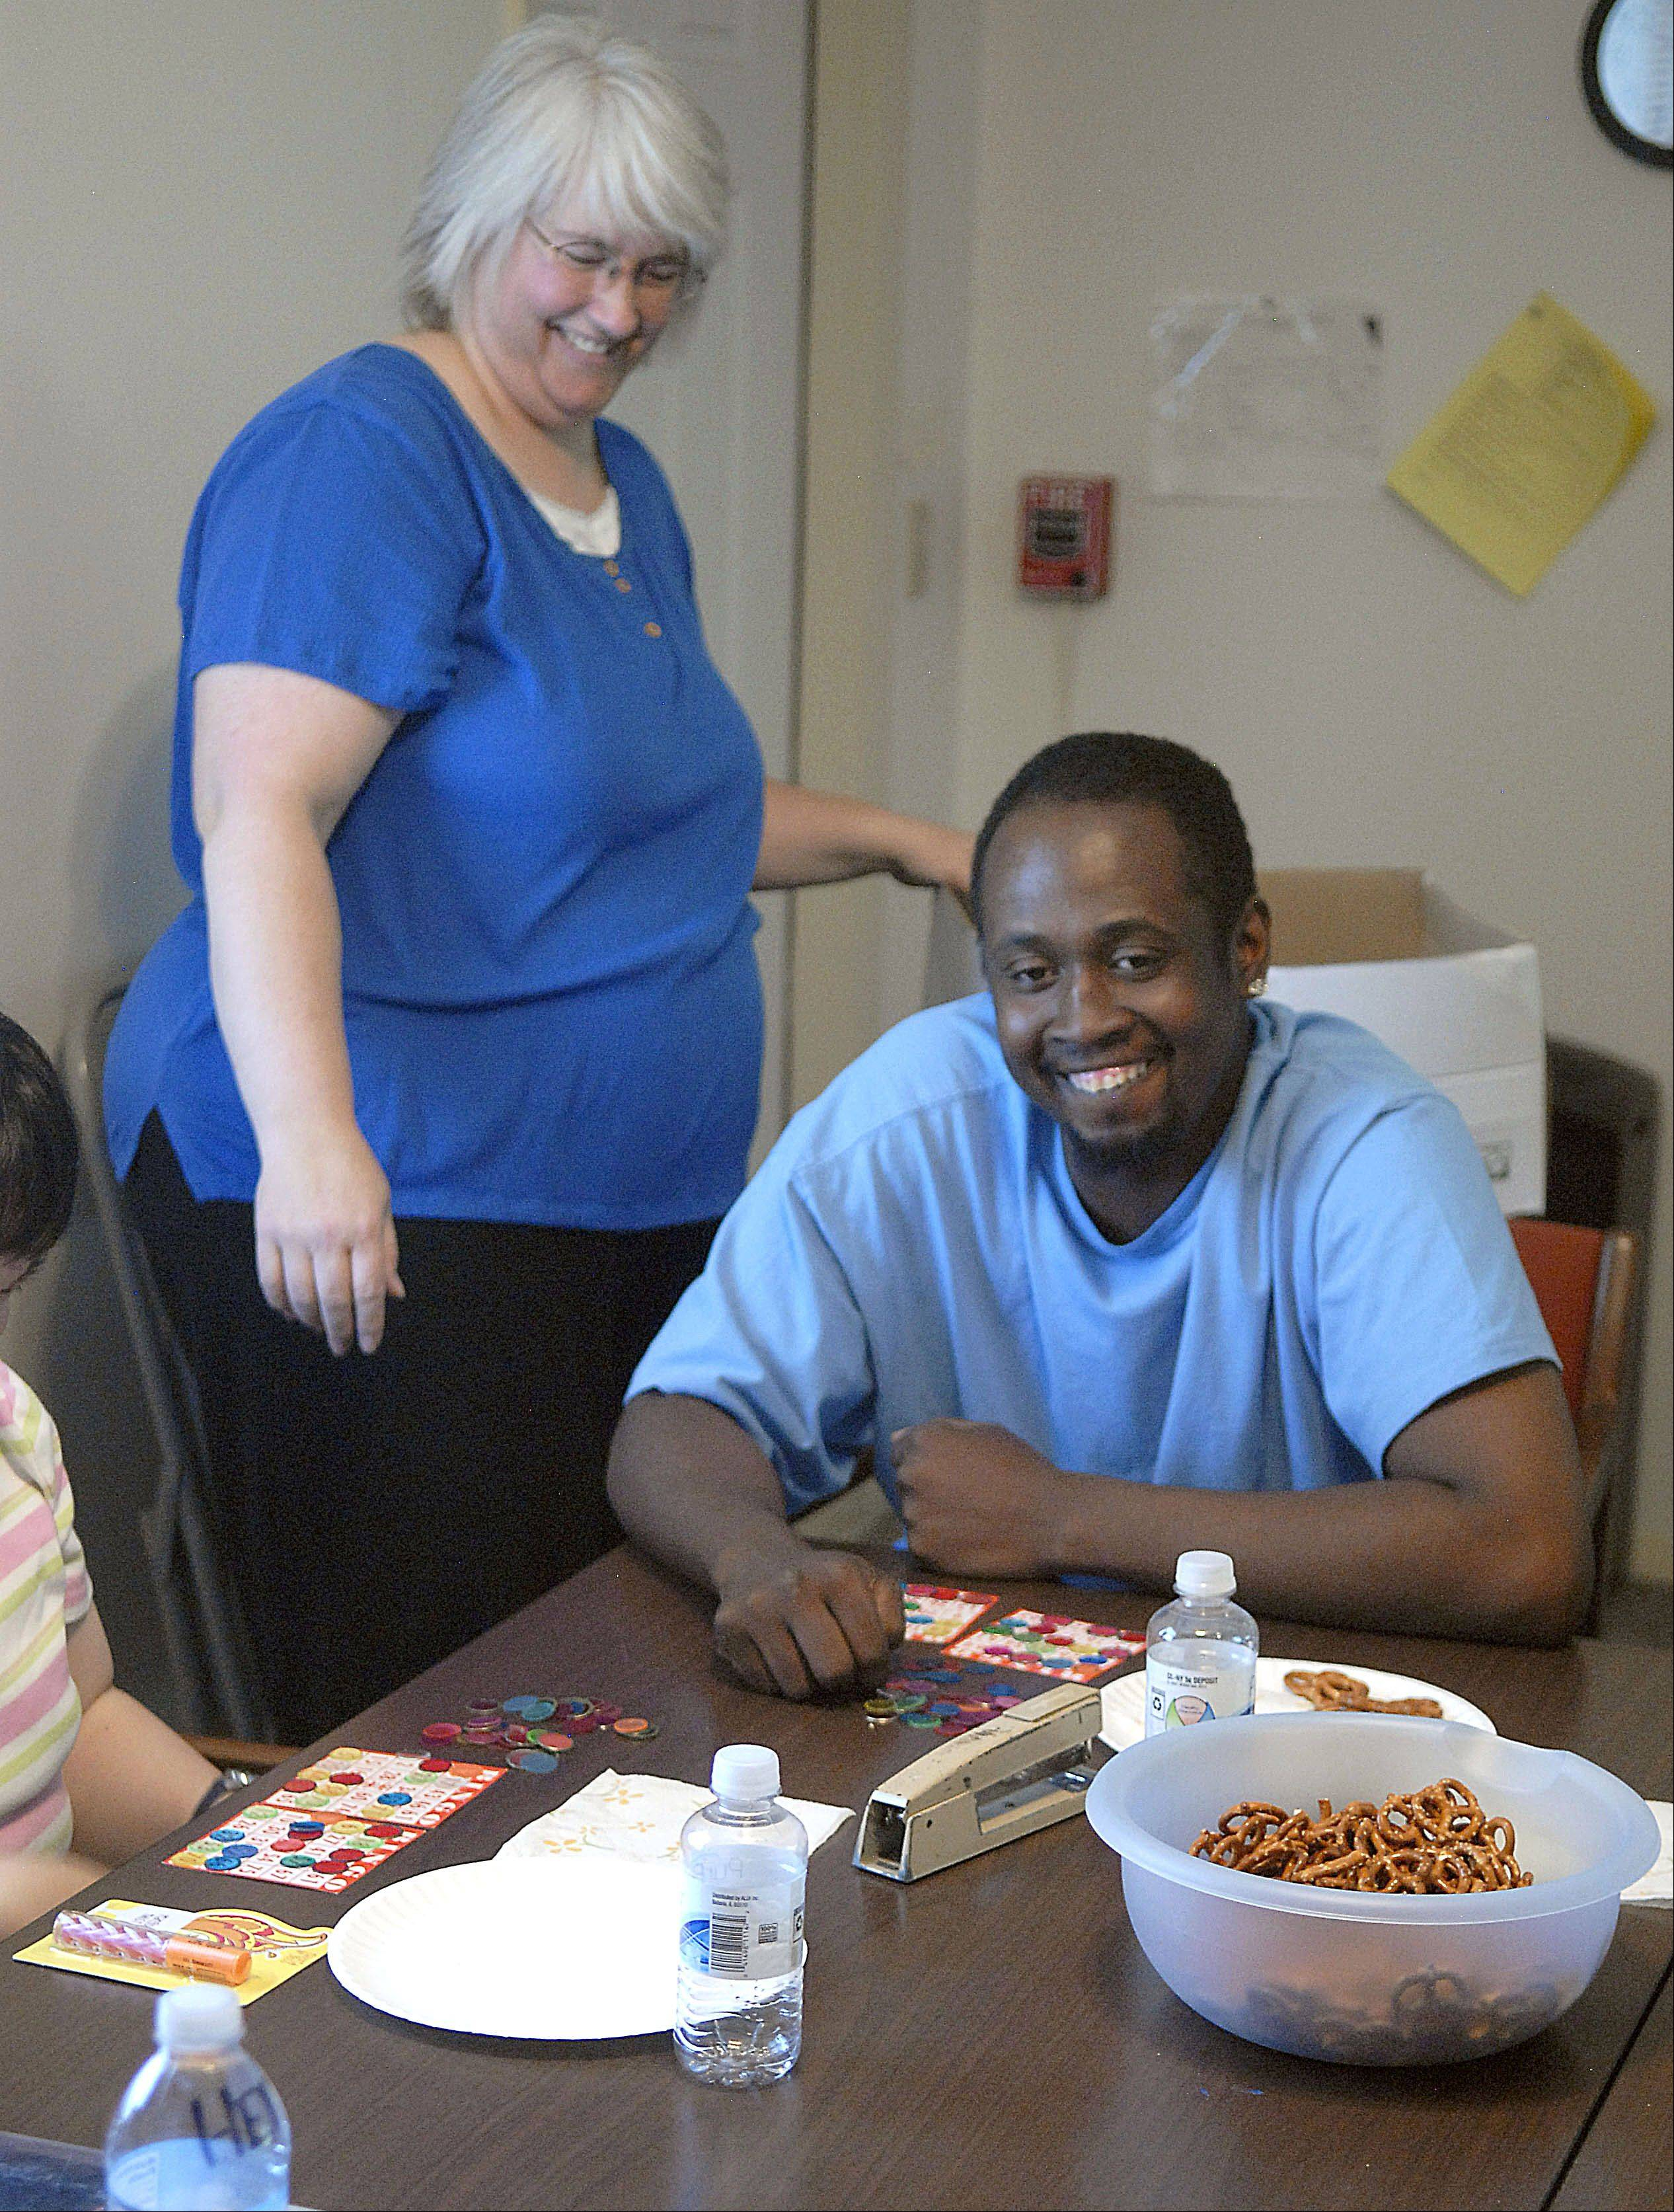 Maurice smiles as he and other clients get ready for a game of bingo during a client input meeting at the Association for Individual Development building in Elgin. Lisa Schnell, left, is his direct support person and has been working with him for more than three years.